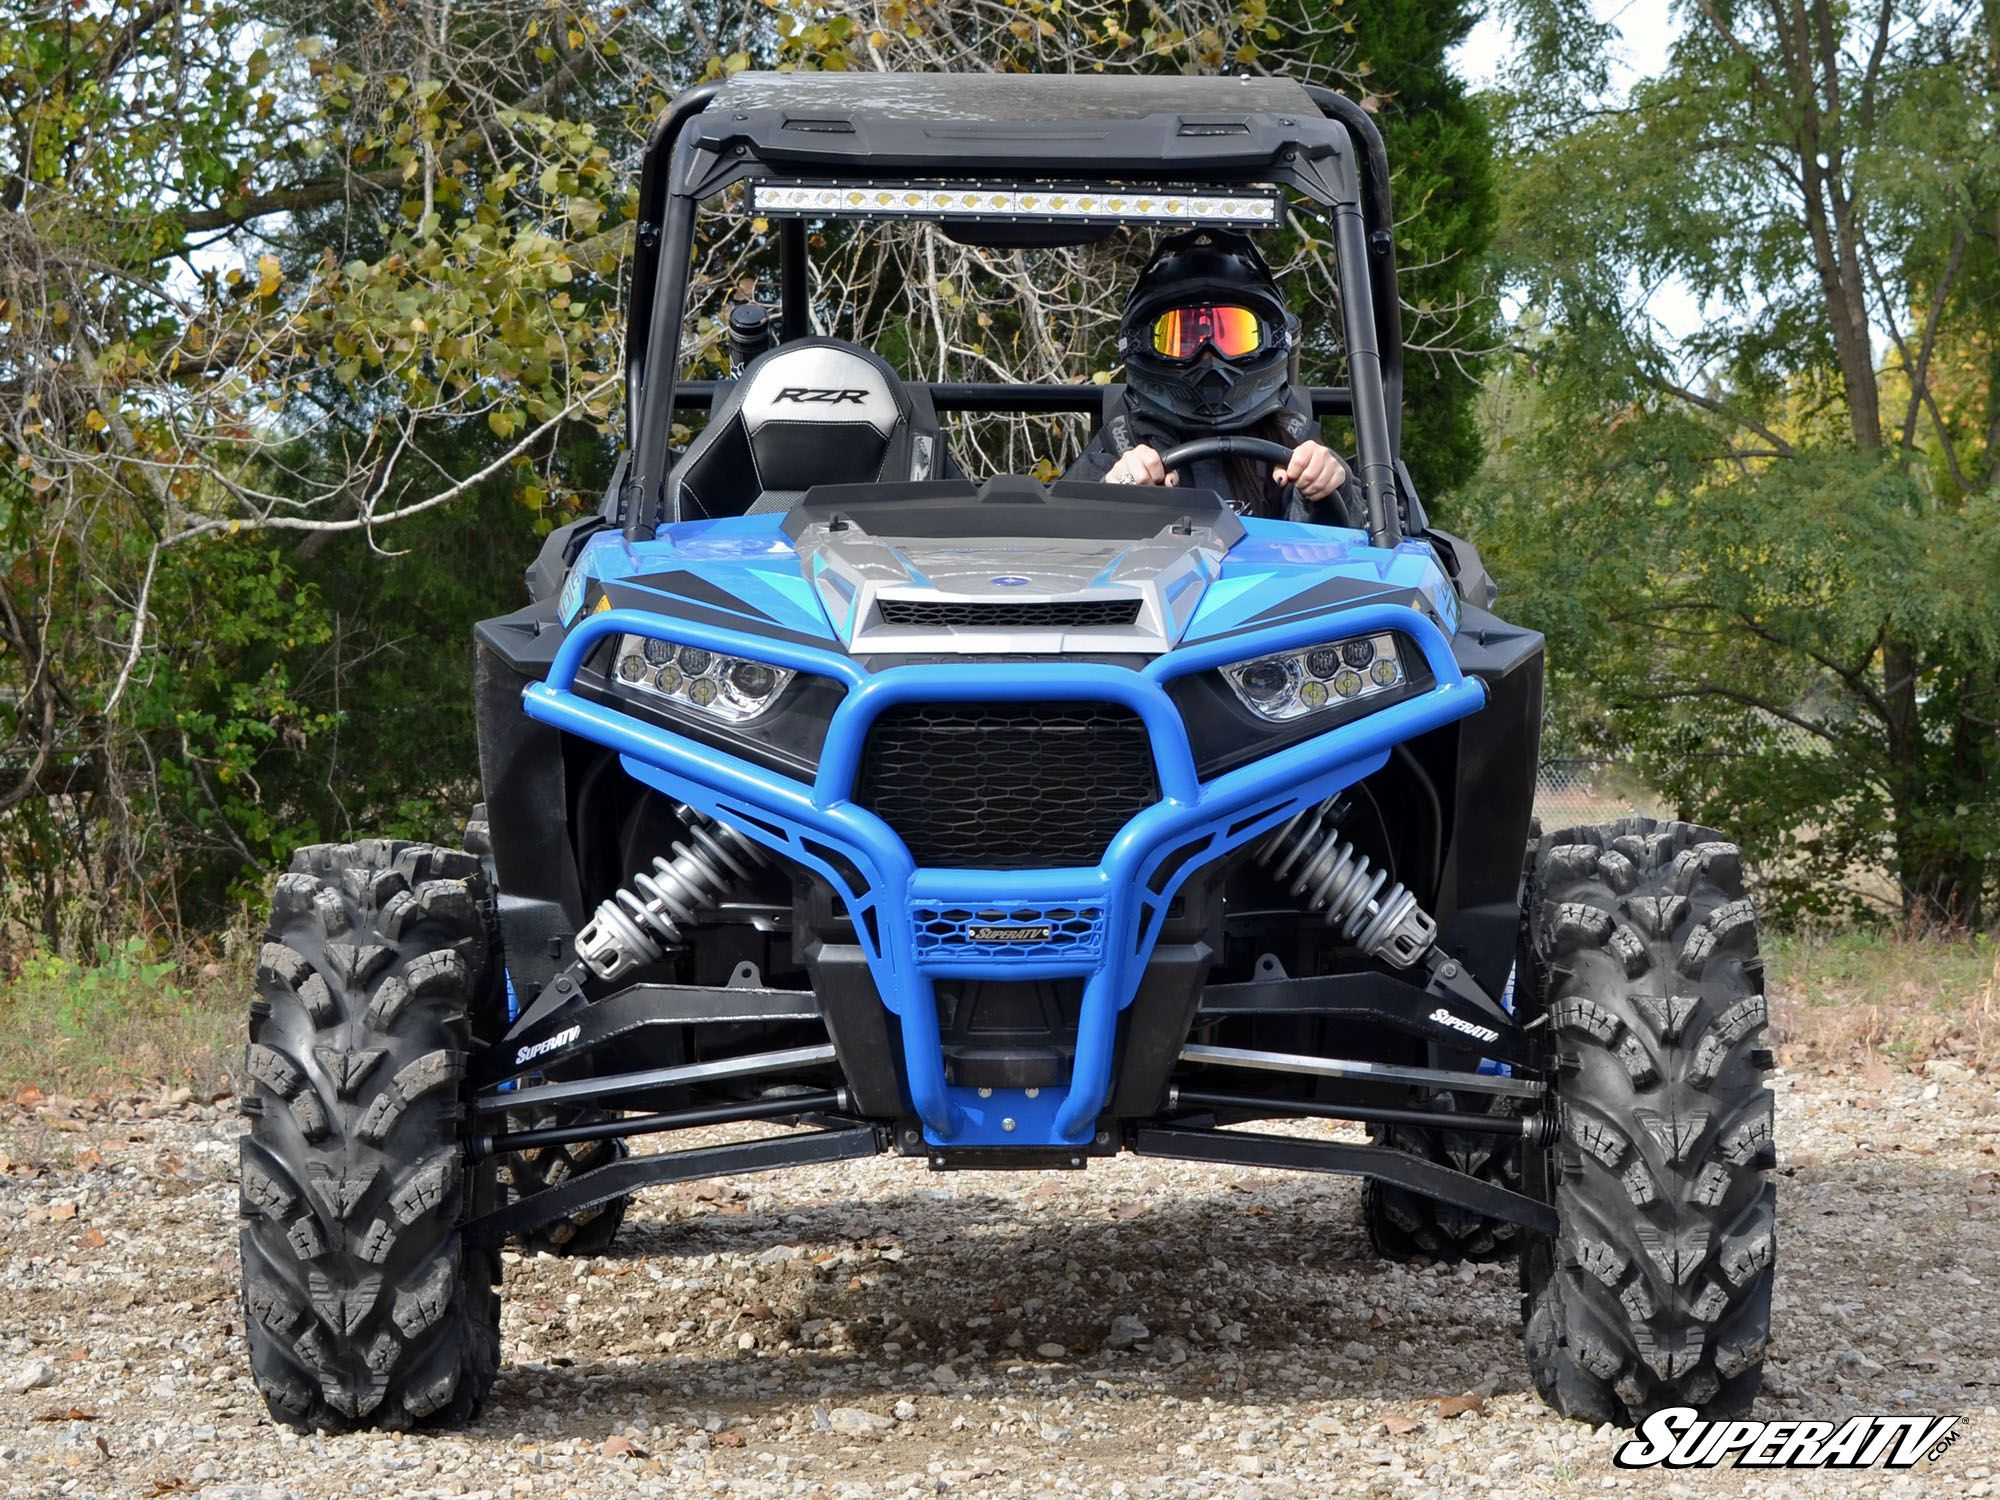 Razorbumperbuggie further Showthread also 267876 7 Pin Trailer Wiring Outlet Fuses likewise Nissan D21 Tail Light Wiring likewise Superatv Polaris Rzr 900 900s 900xc 1000s Xp 1000 Xp Turbo Front Brush Guard Fits 4 Seaters Also. on trail king trailer wiring diagram